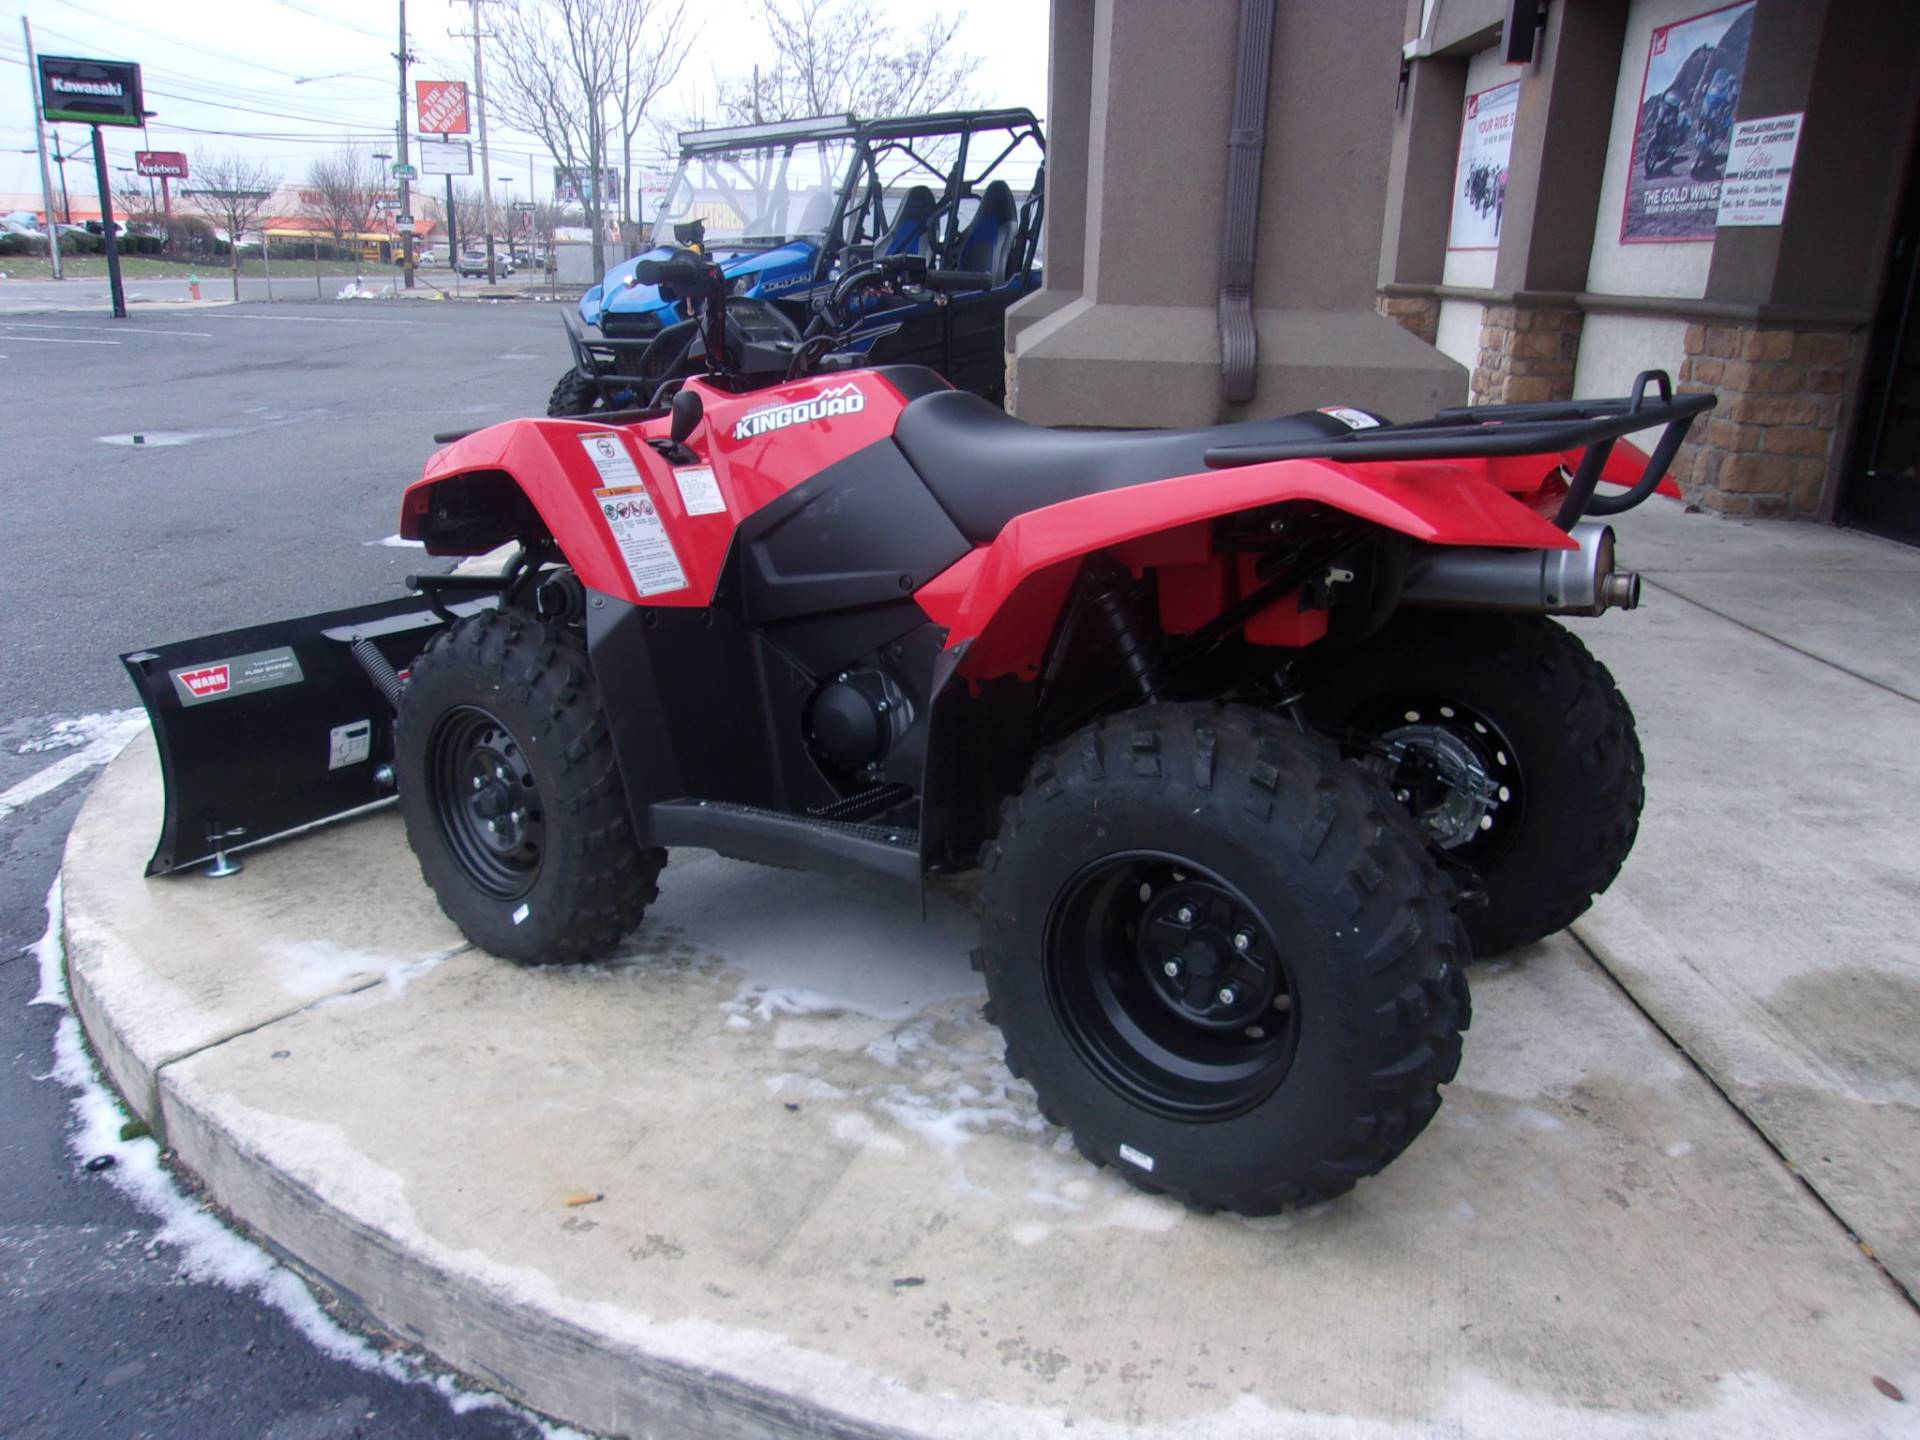 2018 Suzuki KingQuad 400ASi in Philadelphia, Pennsylvania - Photo 3